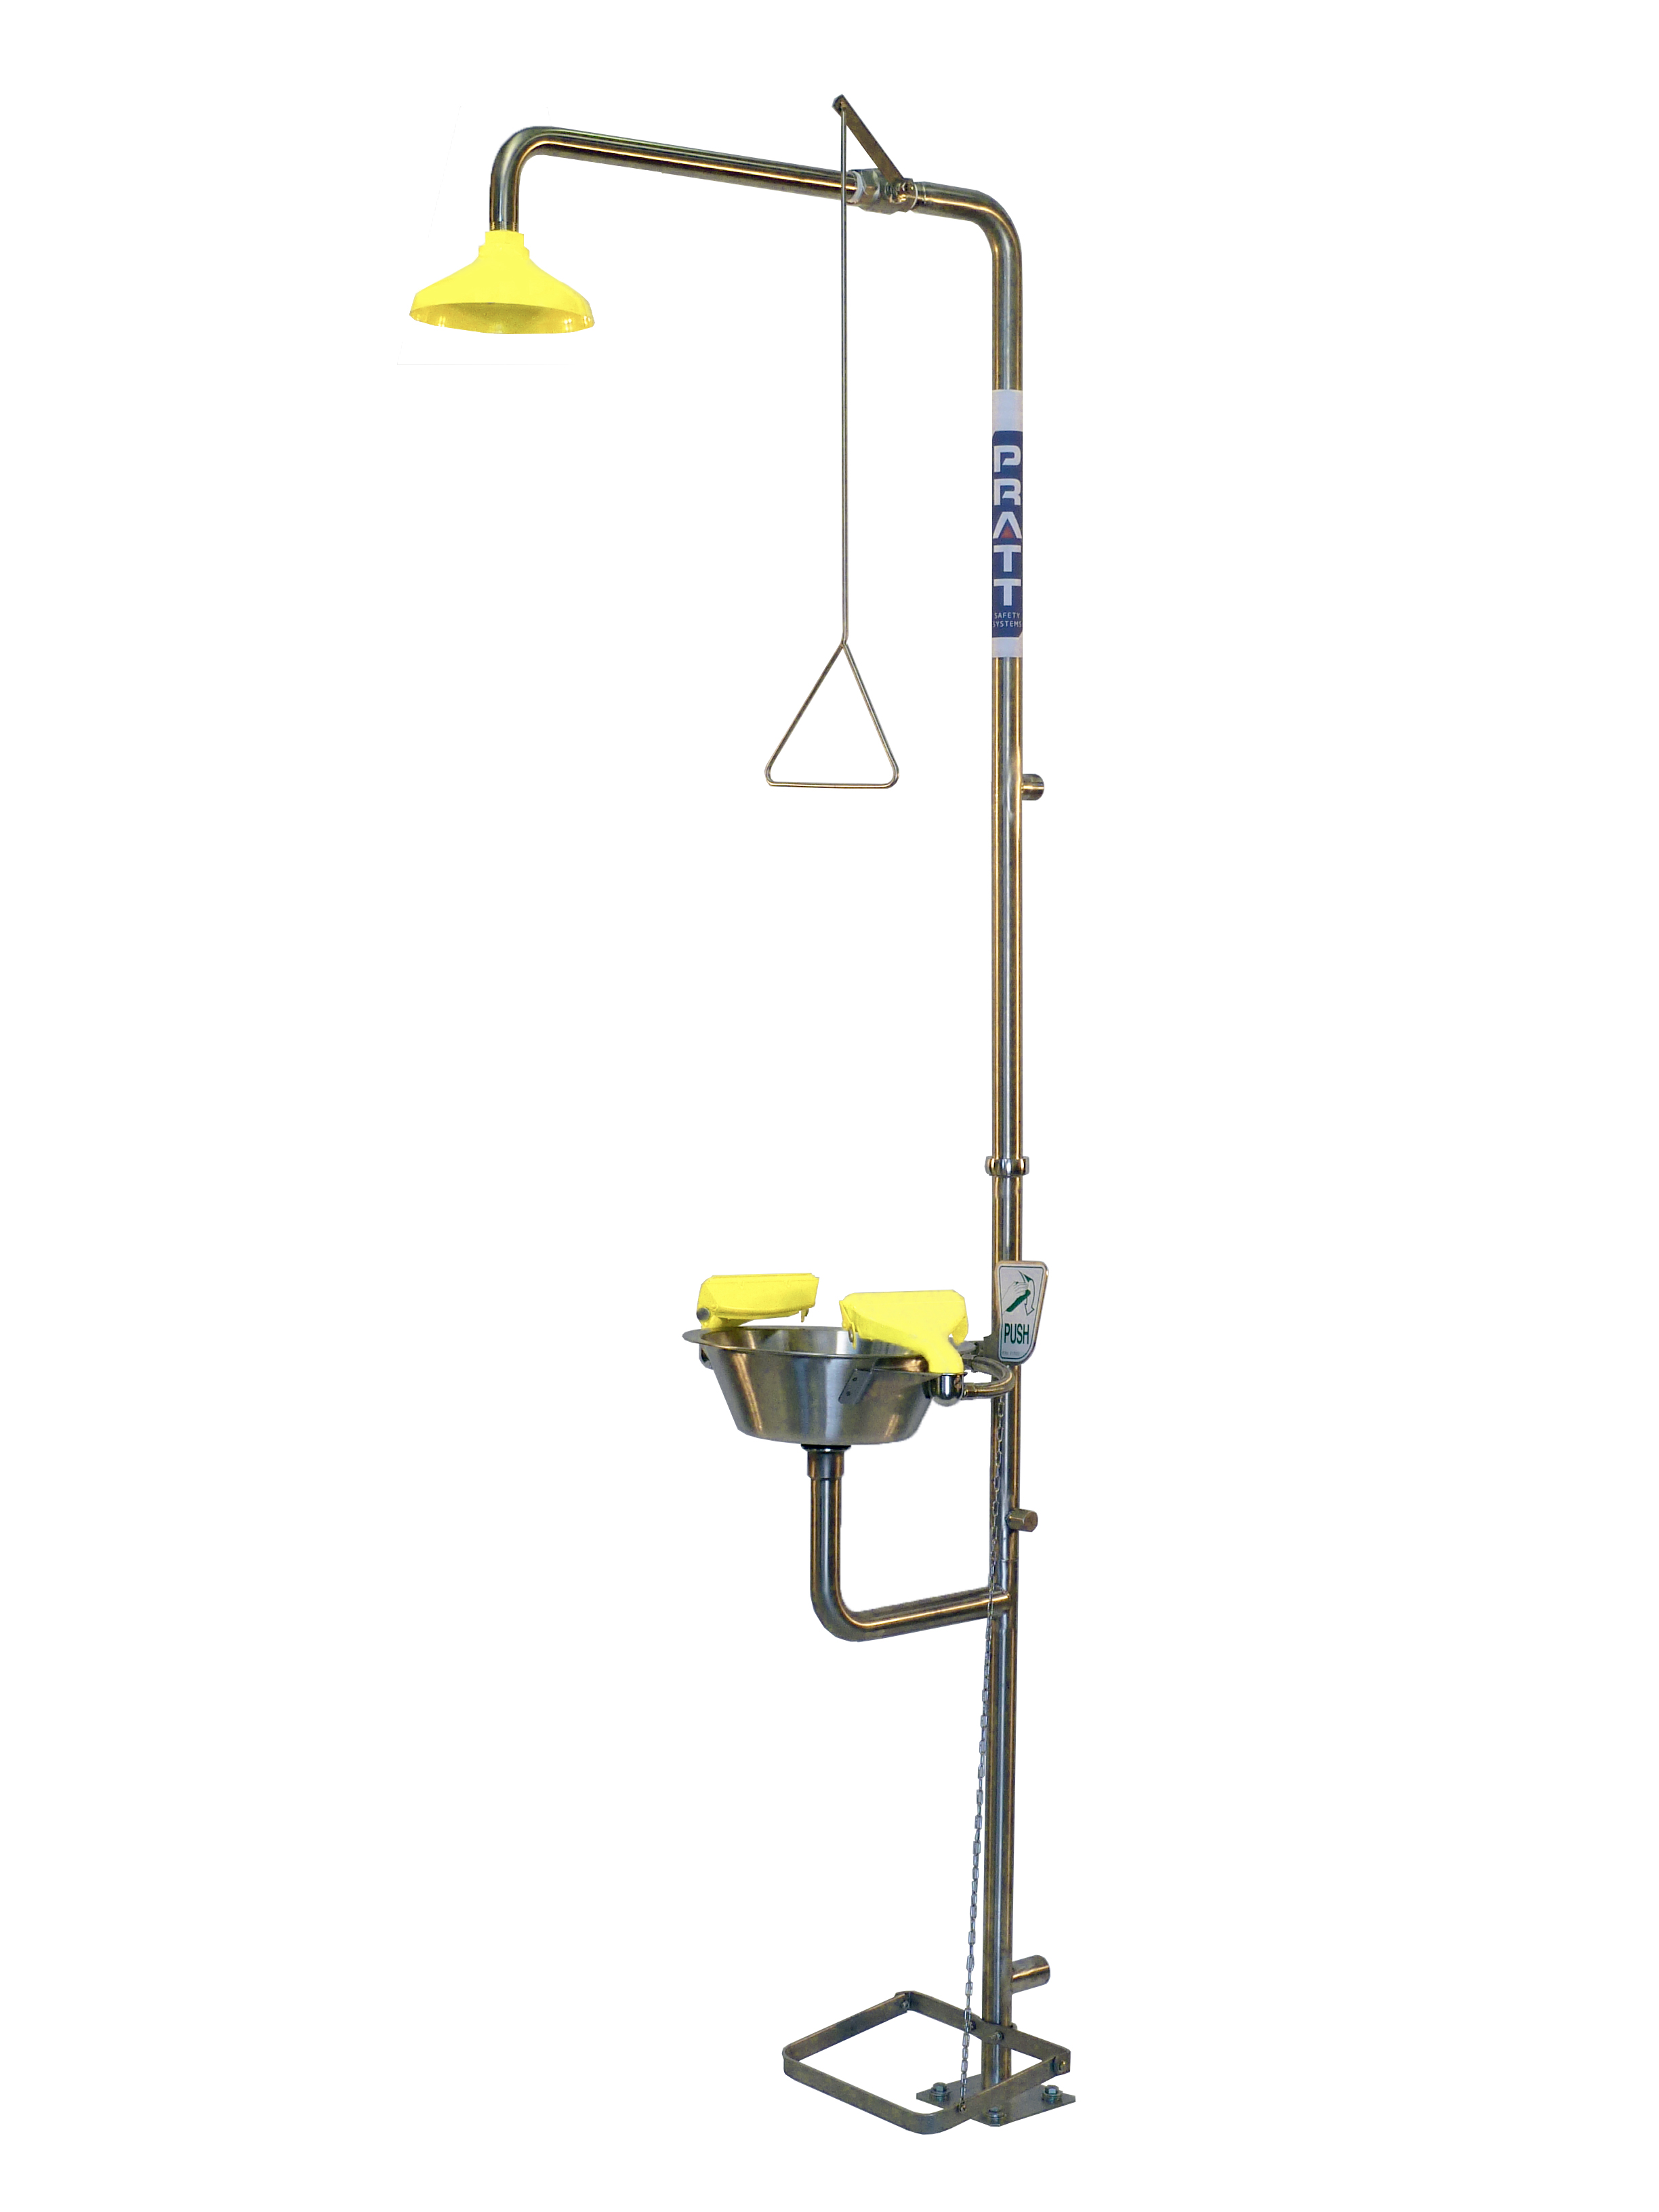 Picture of: Taylor Safety Equipment Deluge Shower With Aerated Eye Face Wash